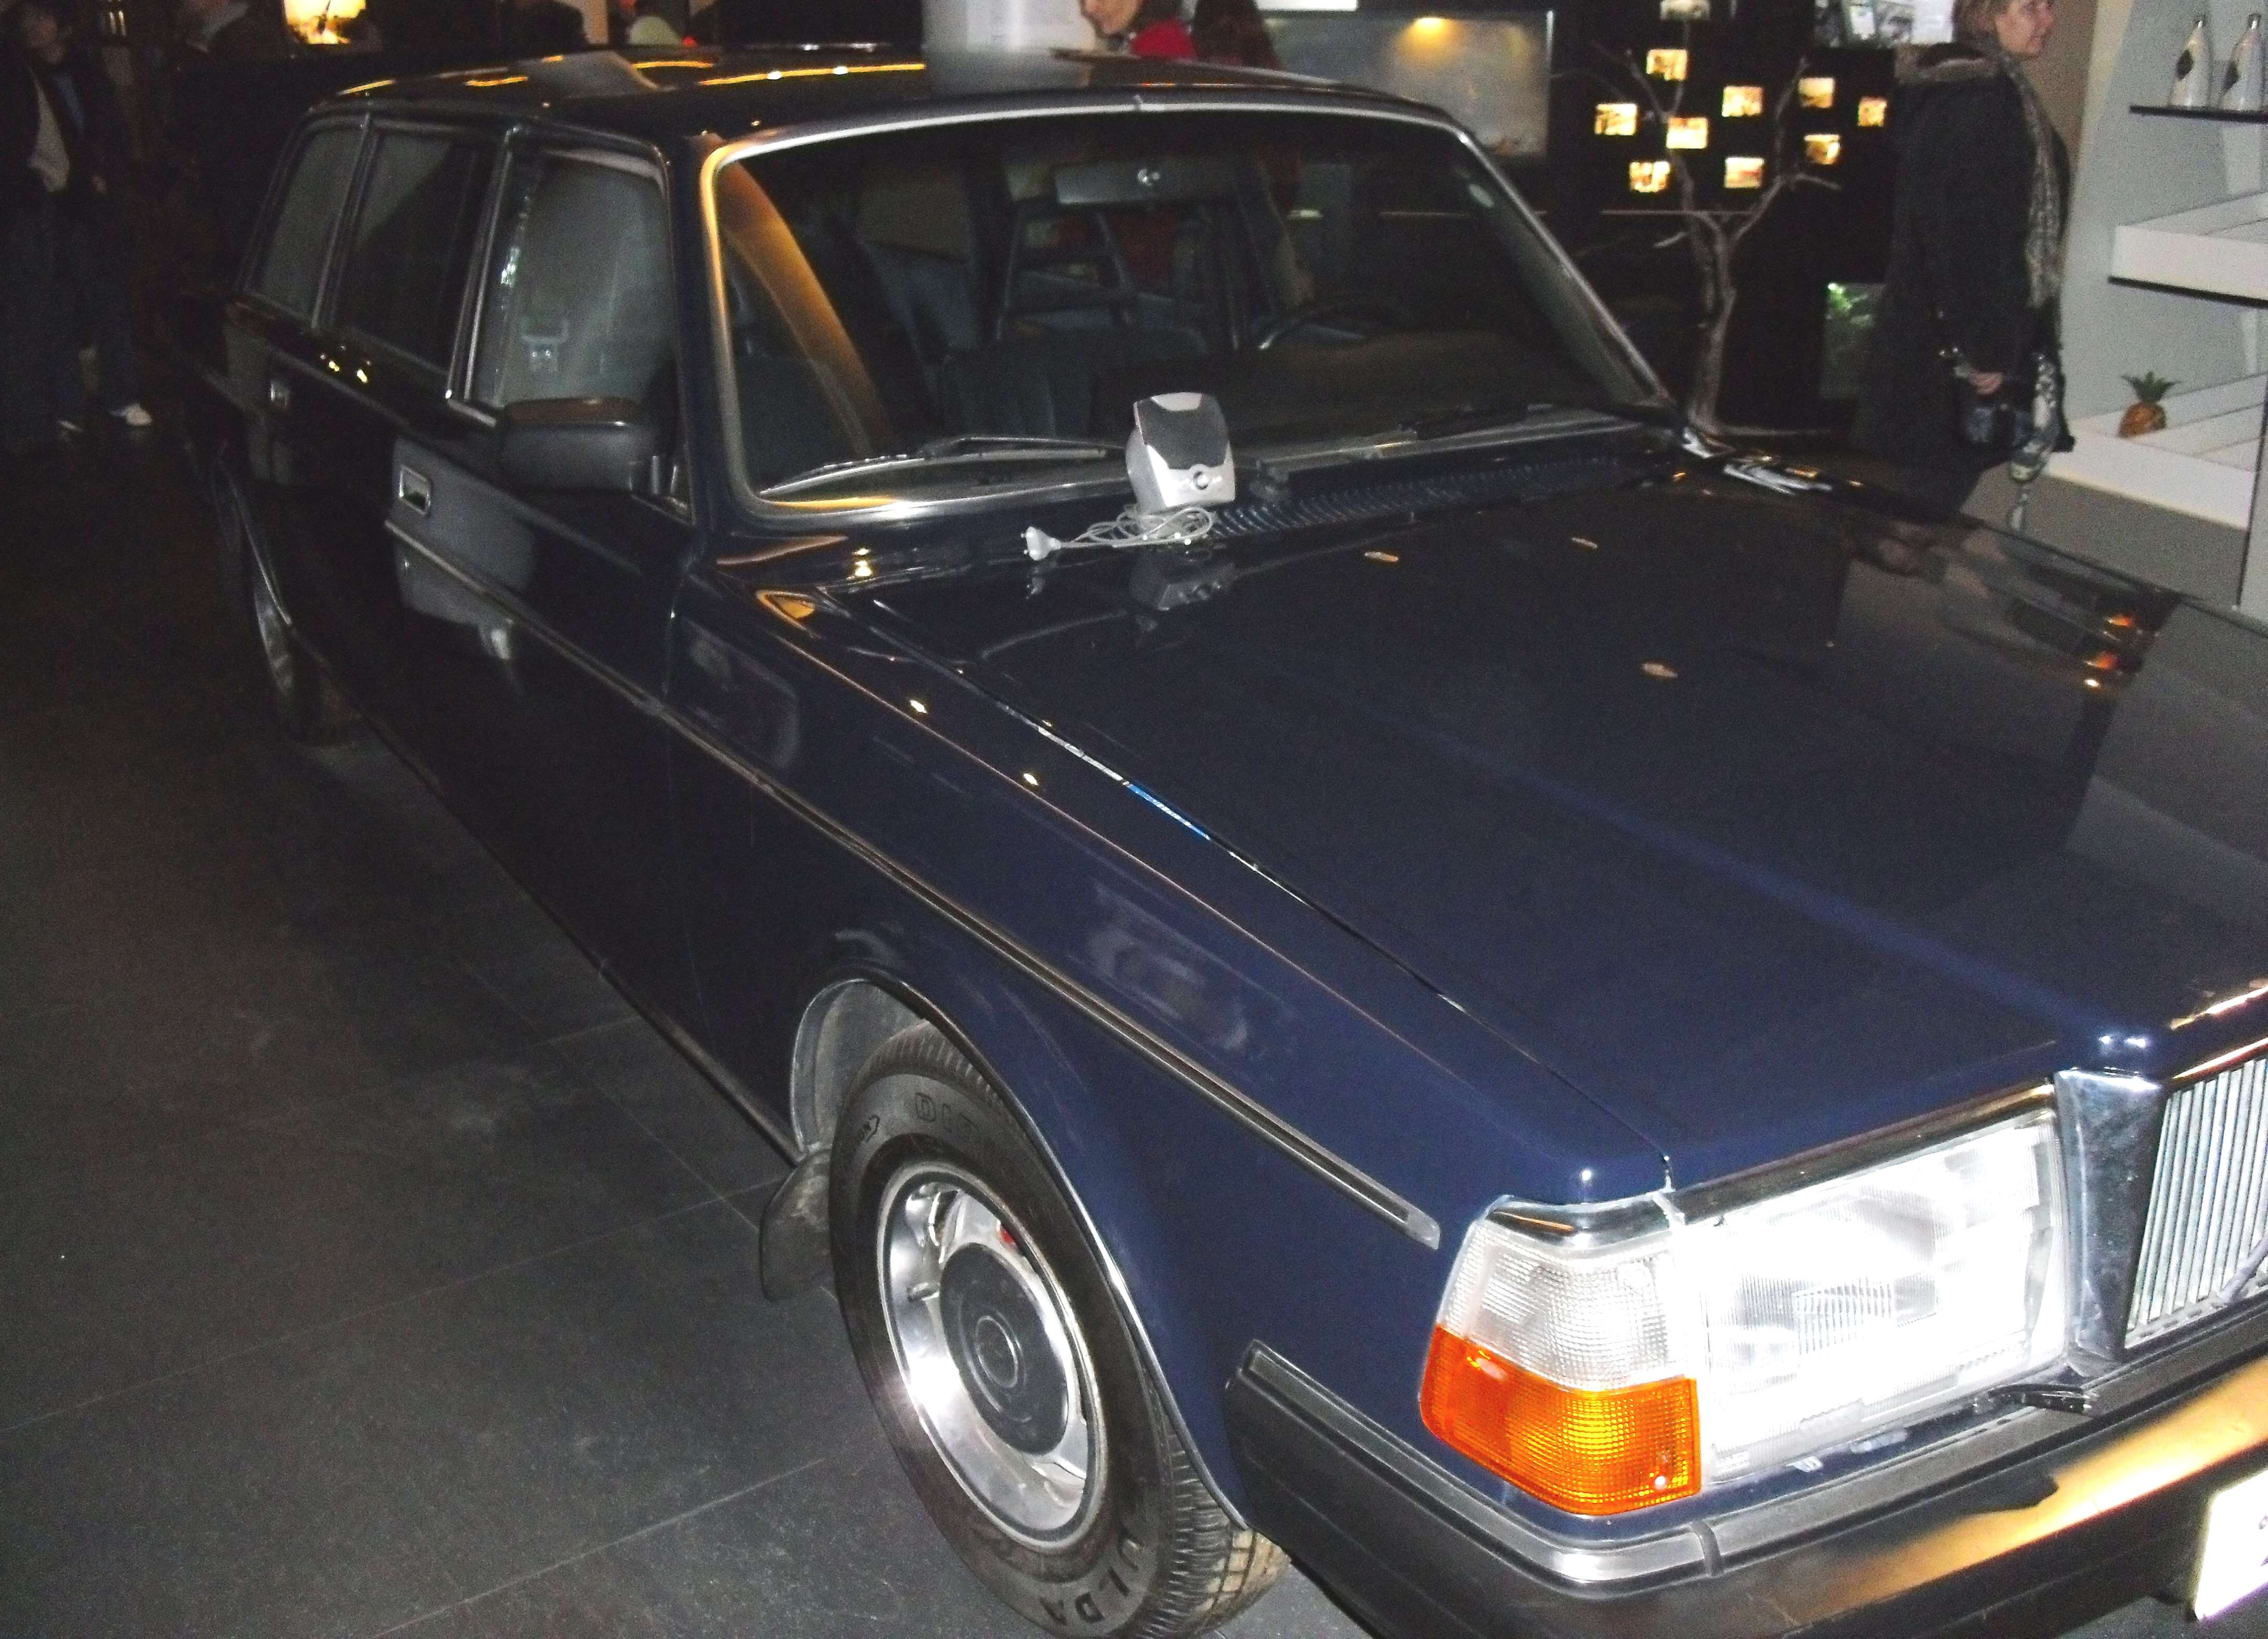 File:Volvo 264 TE at the DDR Museum in Berlin.JPG - Wikimedia Commons